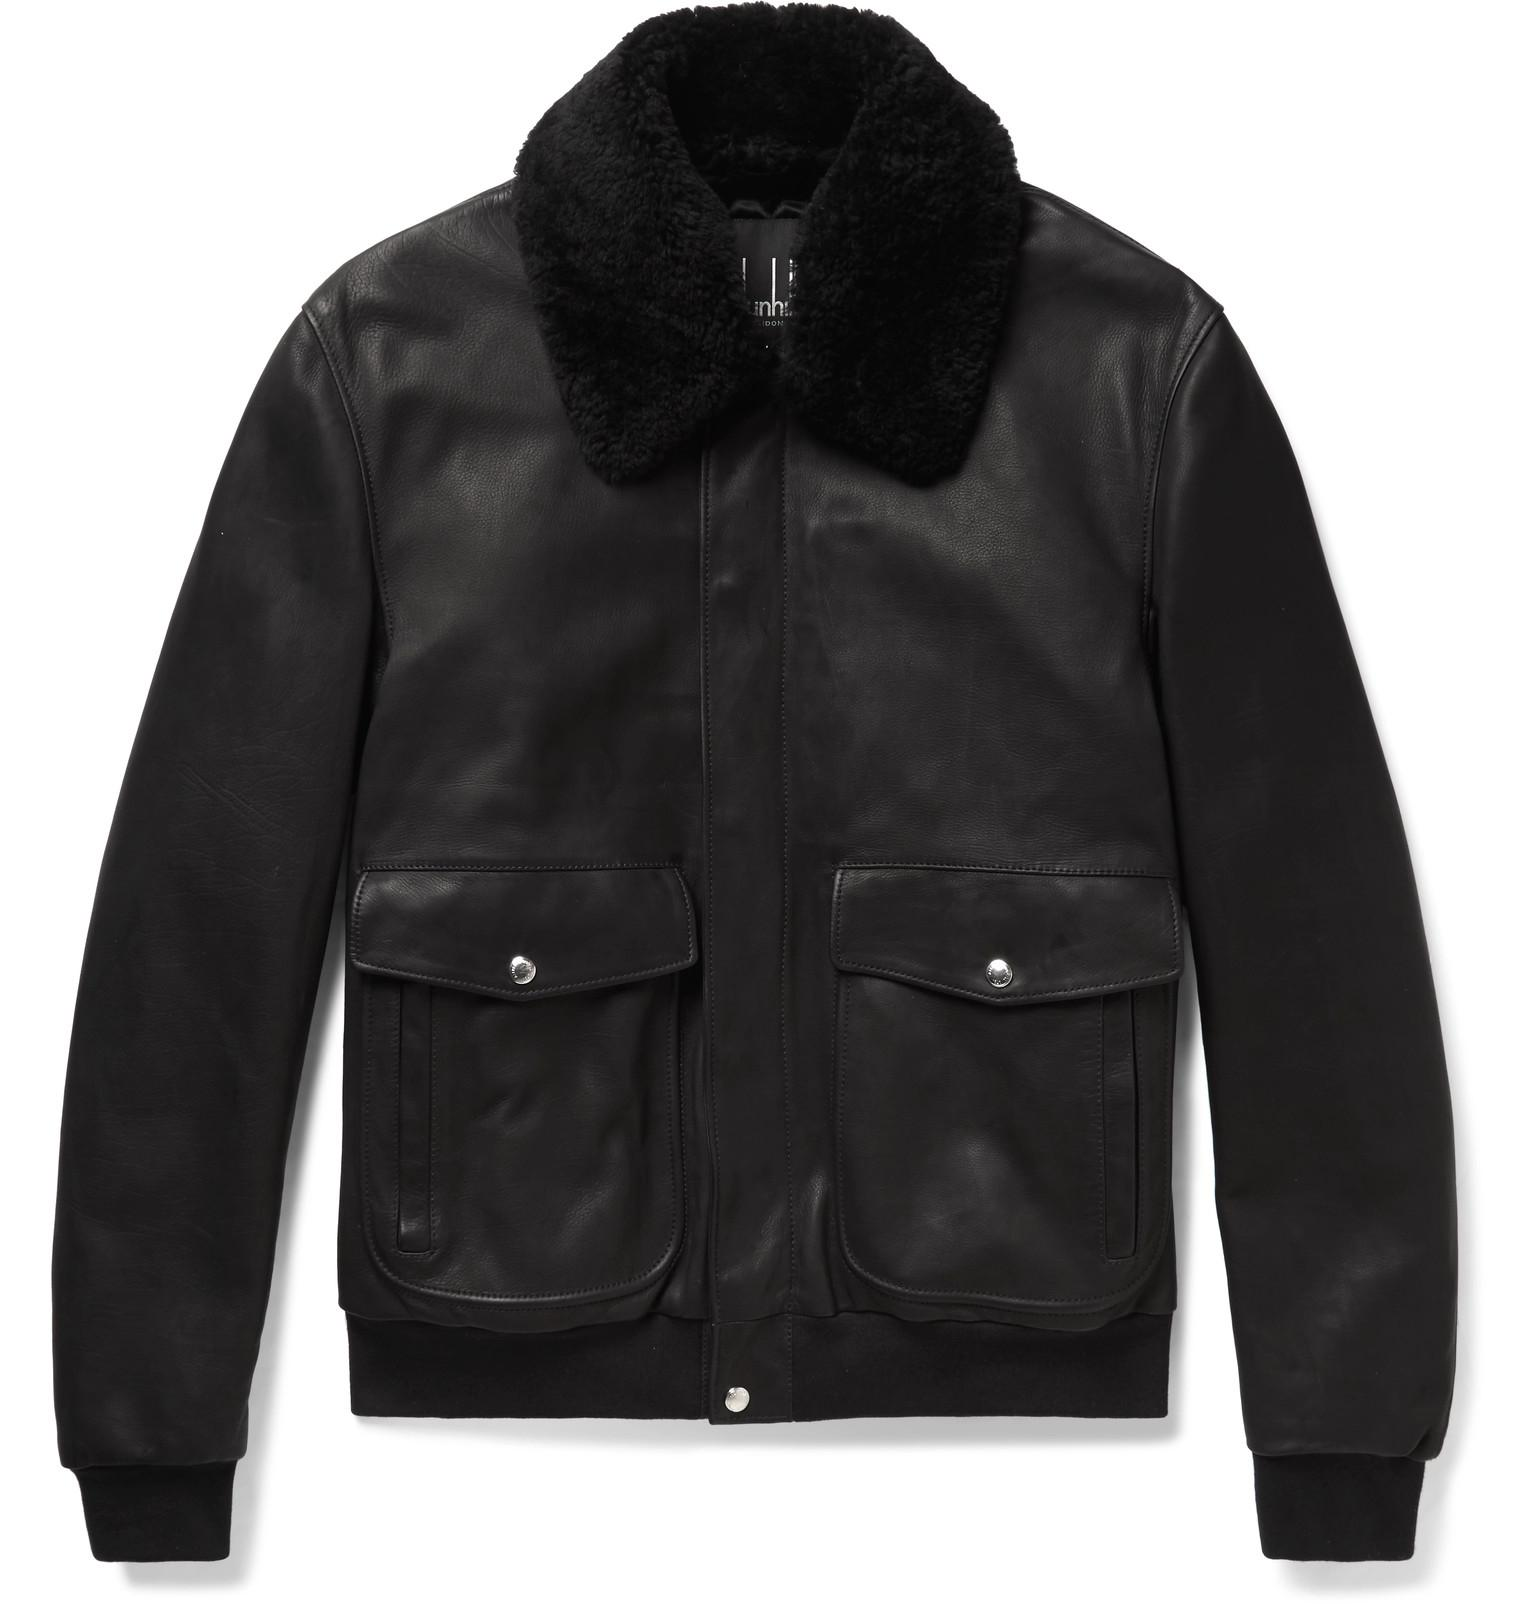 Dunhill leather jacket